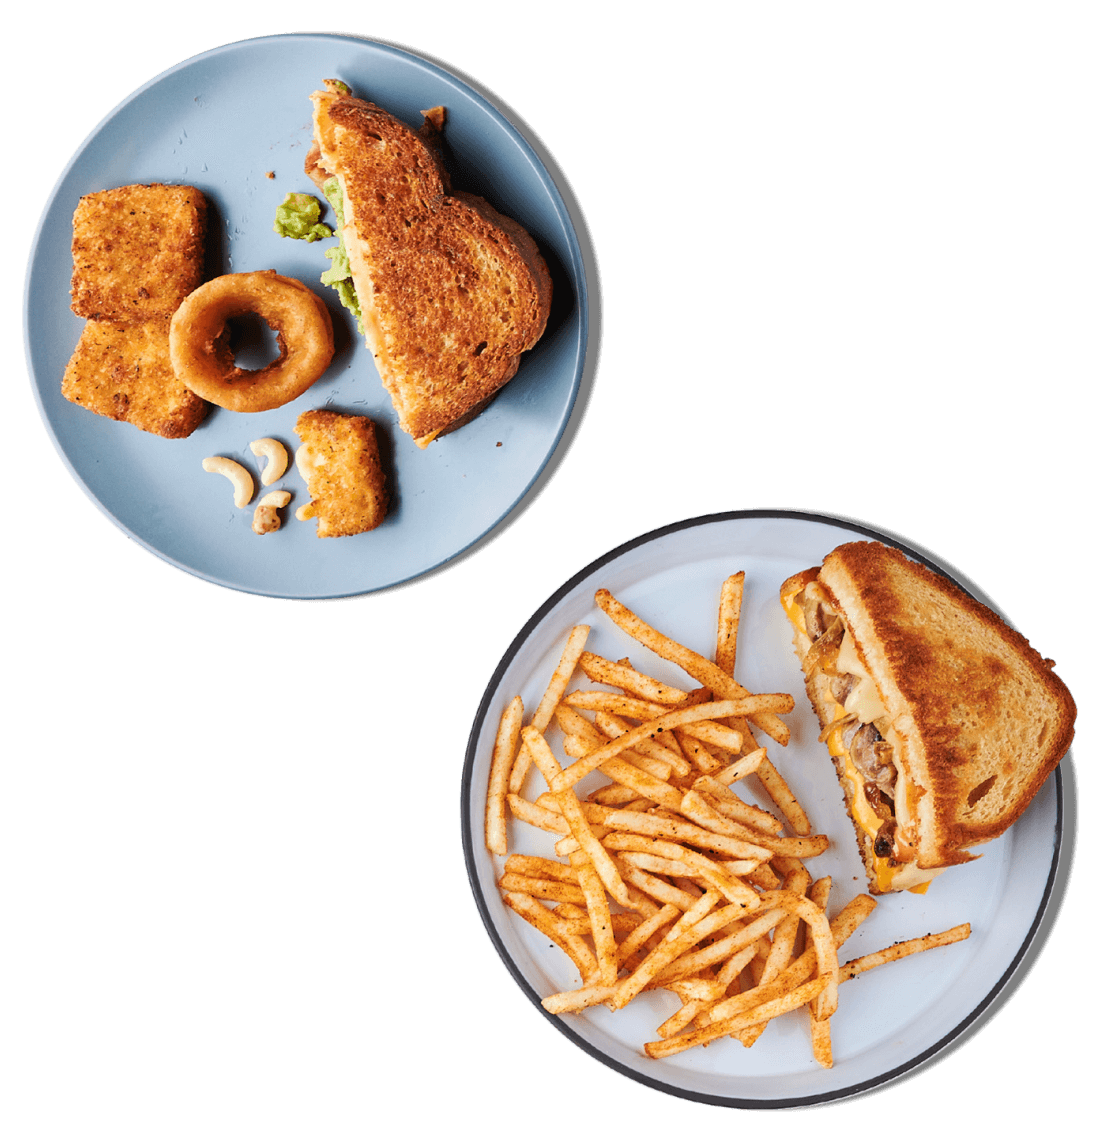 Grilled Cheese Society Menu items spread